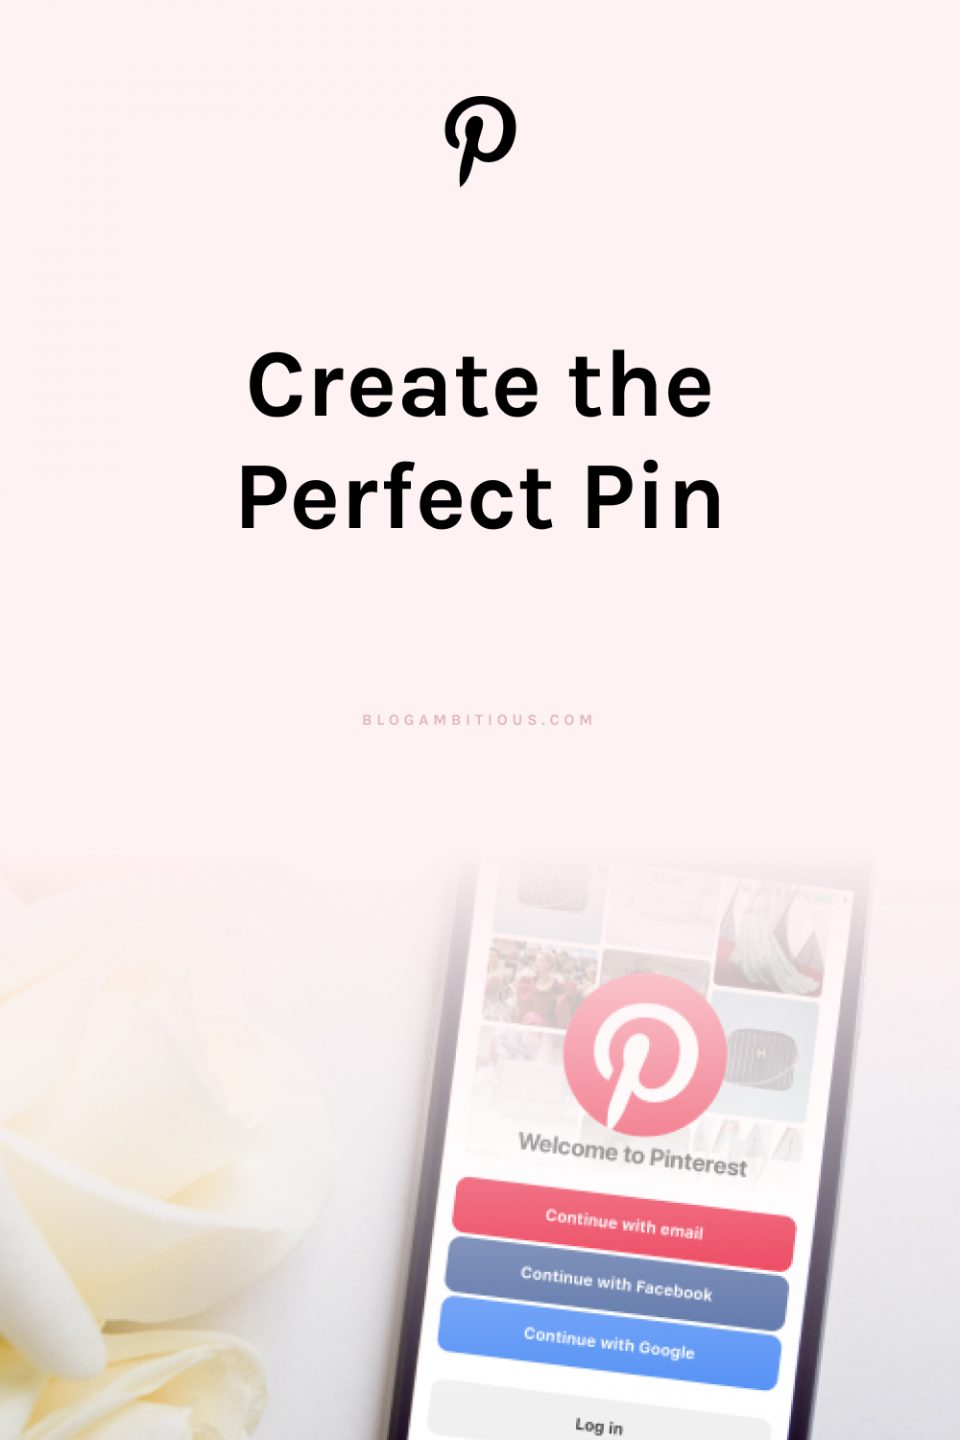 How to Create the Perfect Pin!